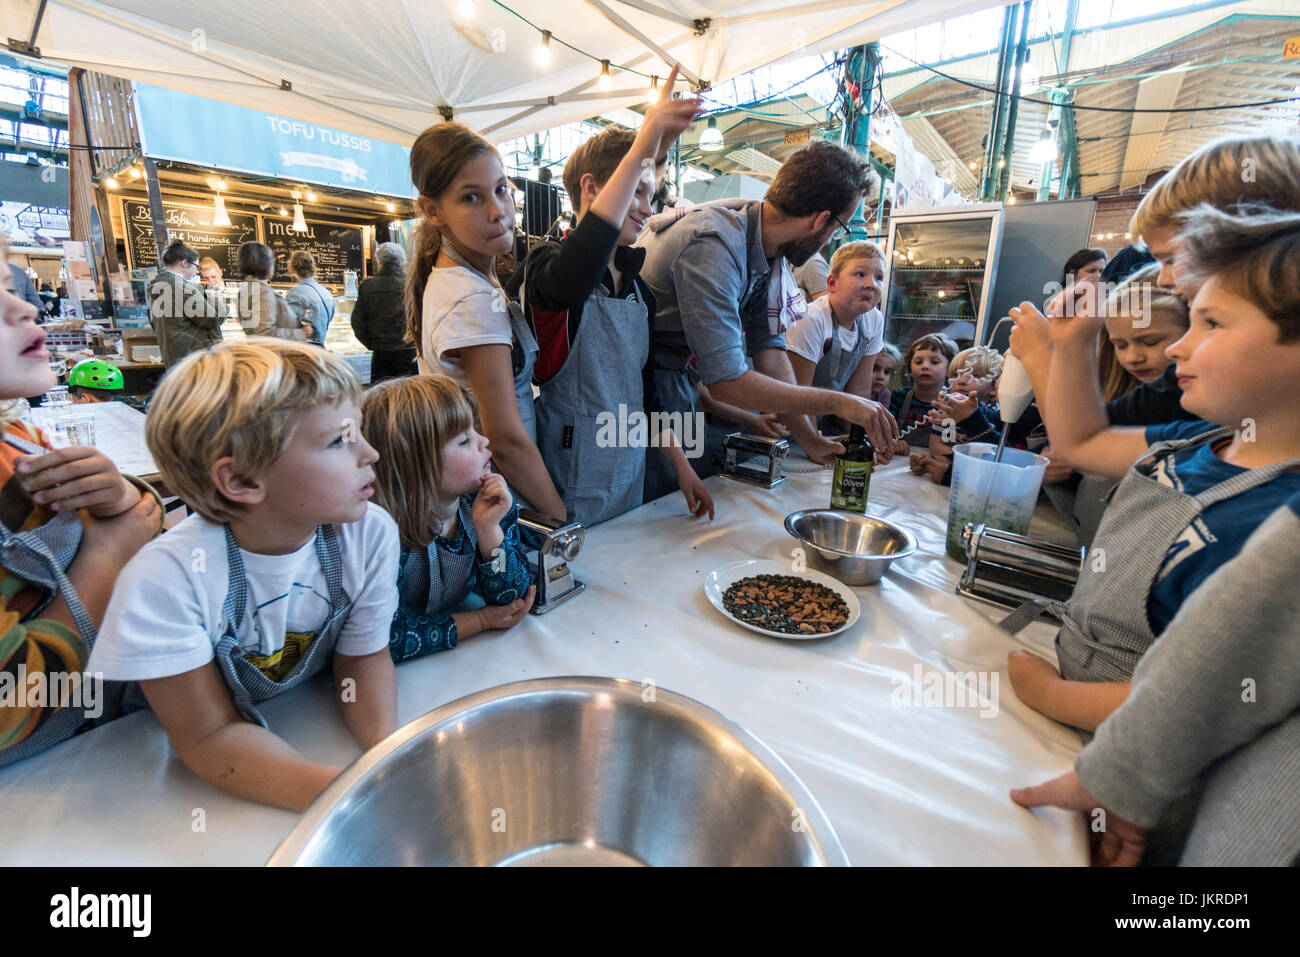 Markthalle 9, Food workshop with kids, Kreuzberg, SO 36, Berlin - Stock Image